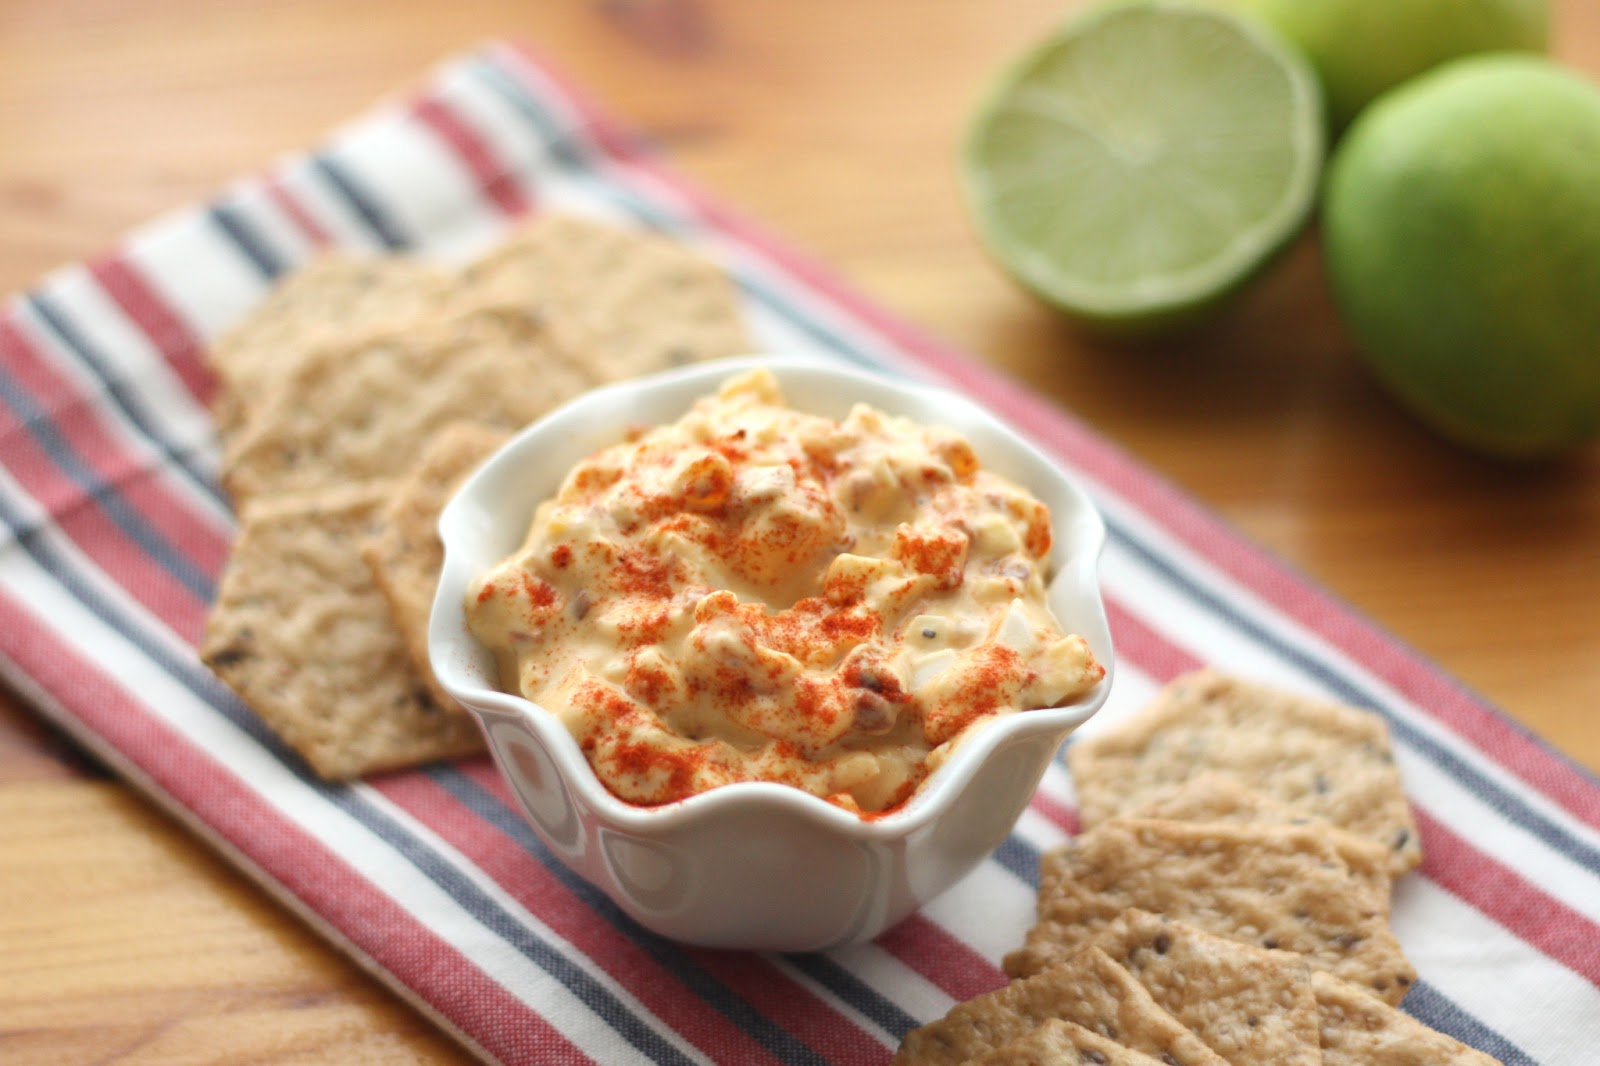 ... In The Kitchen: Chipotle and Lime Egg Salad (a.k.a Deviled Egg Dip